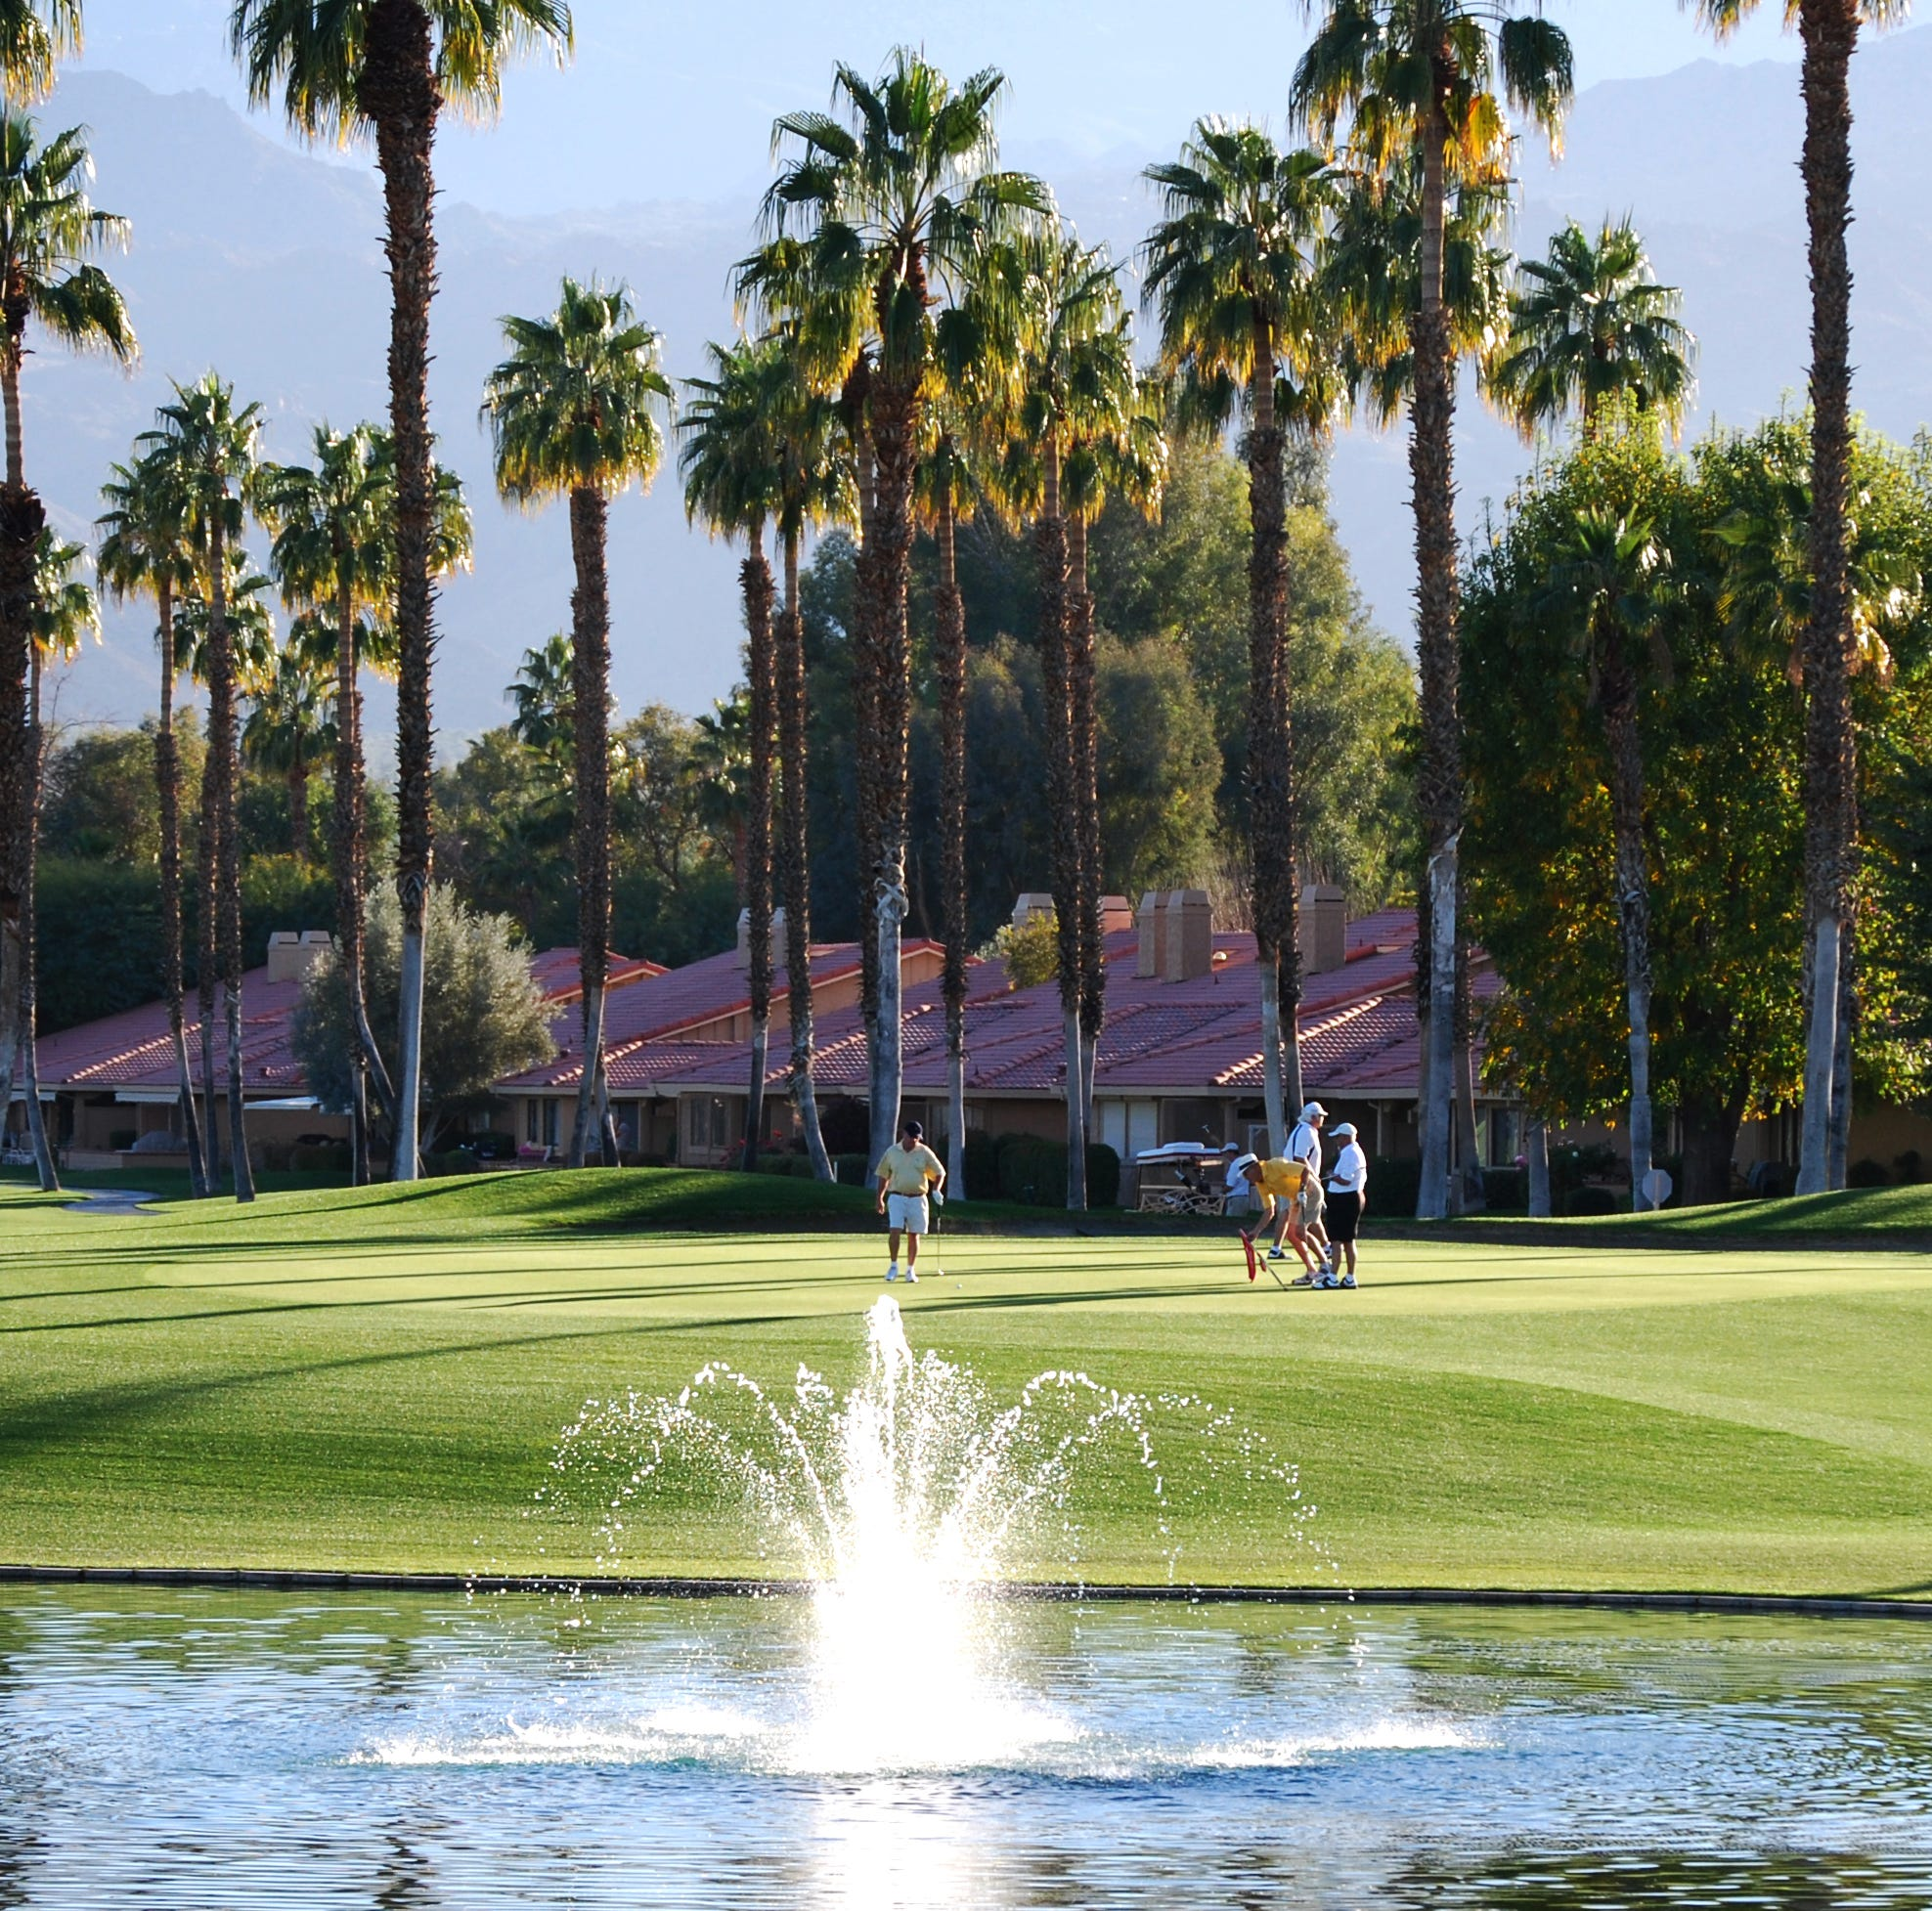 Changes try to put new shine, new life in 40-year-old Chaparral Country Club